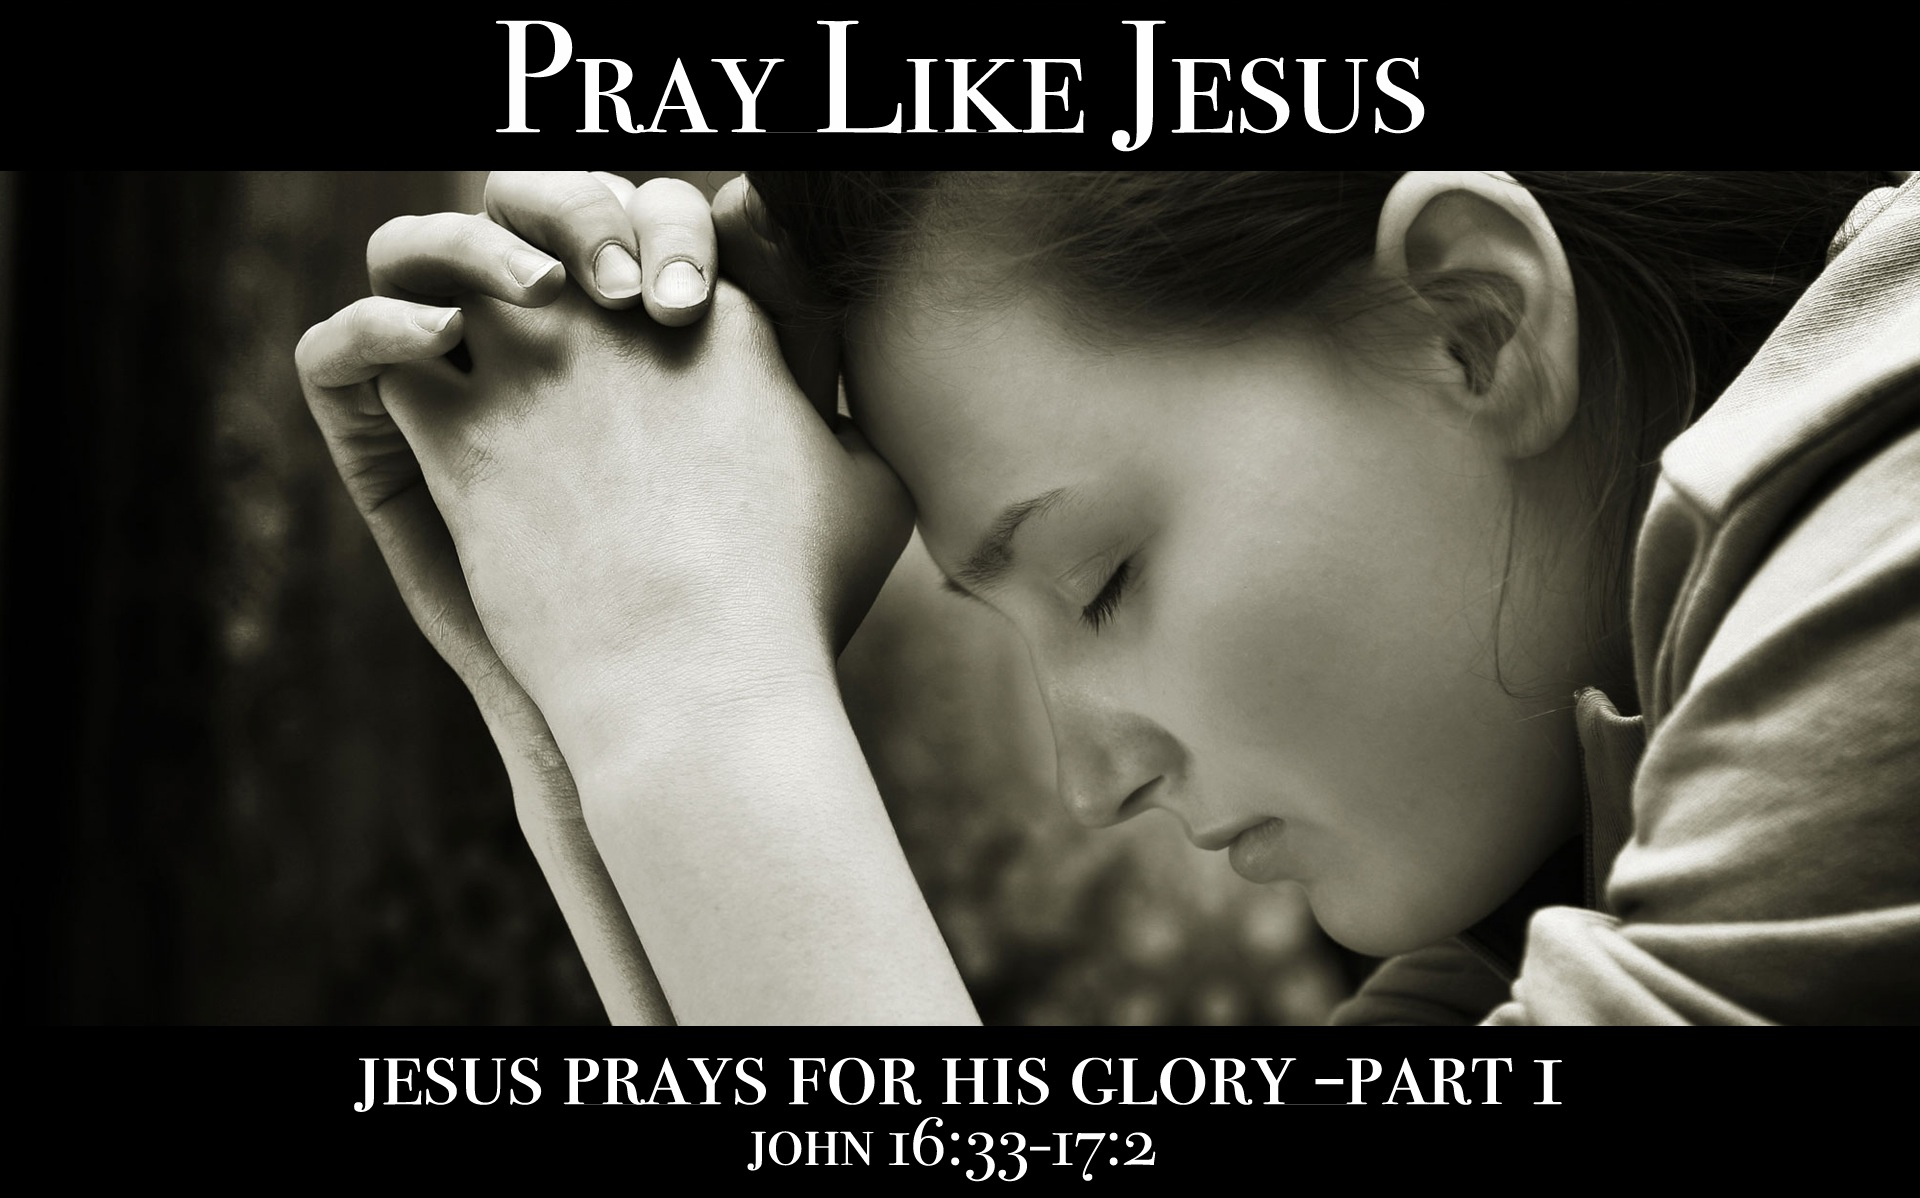 Jesus Prays for His Glory (Part 1)